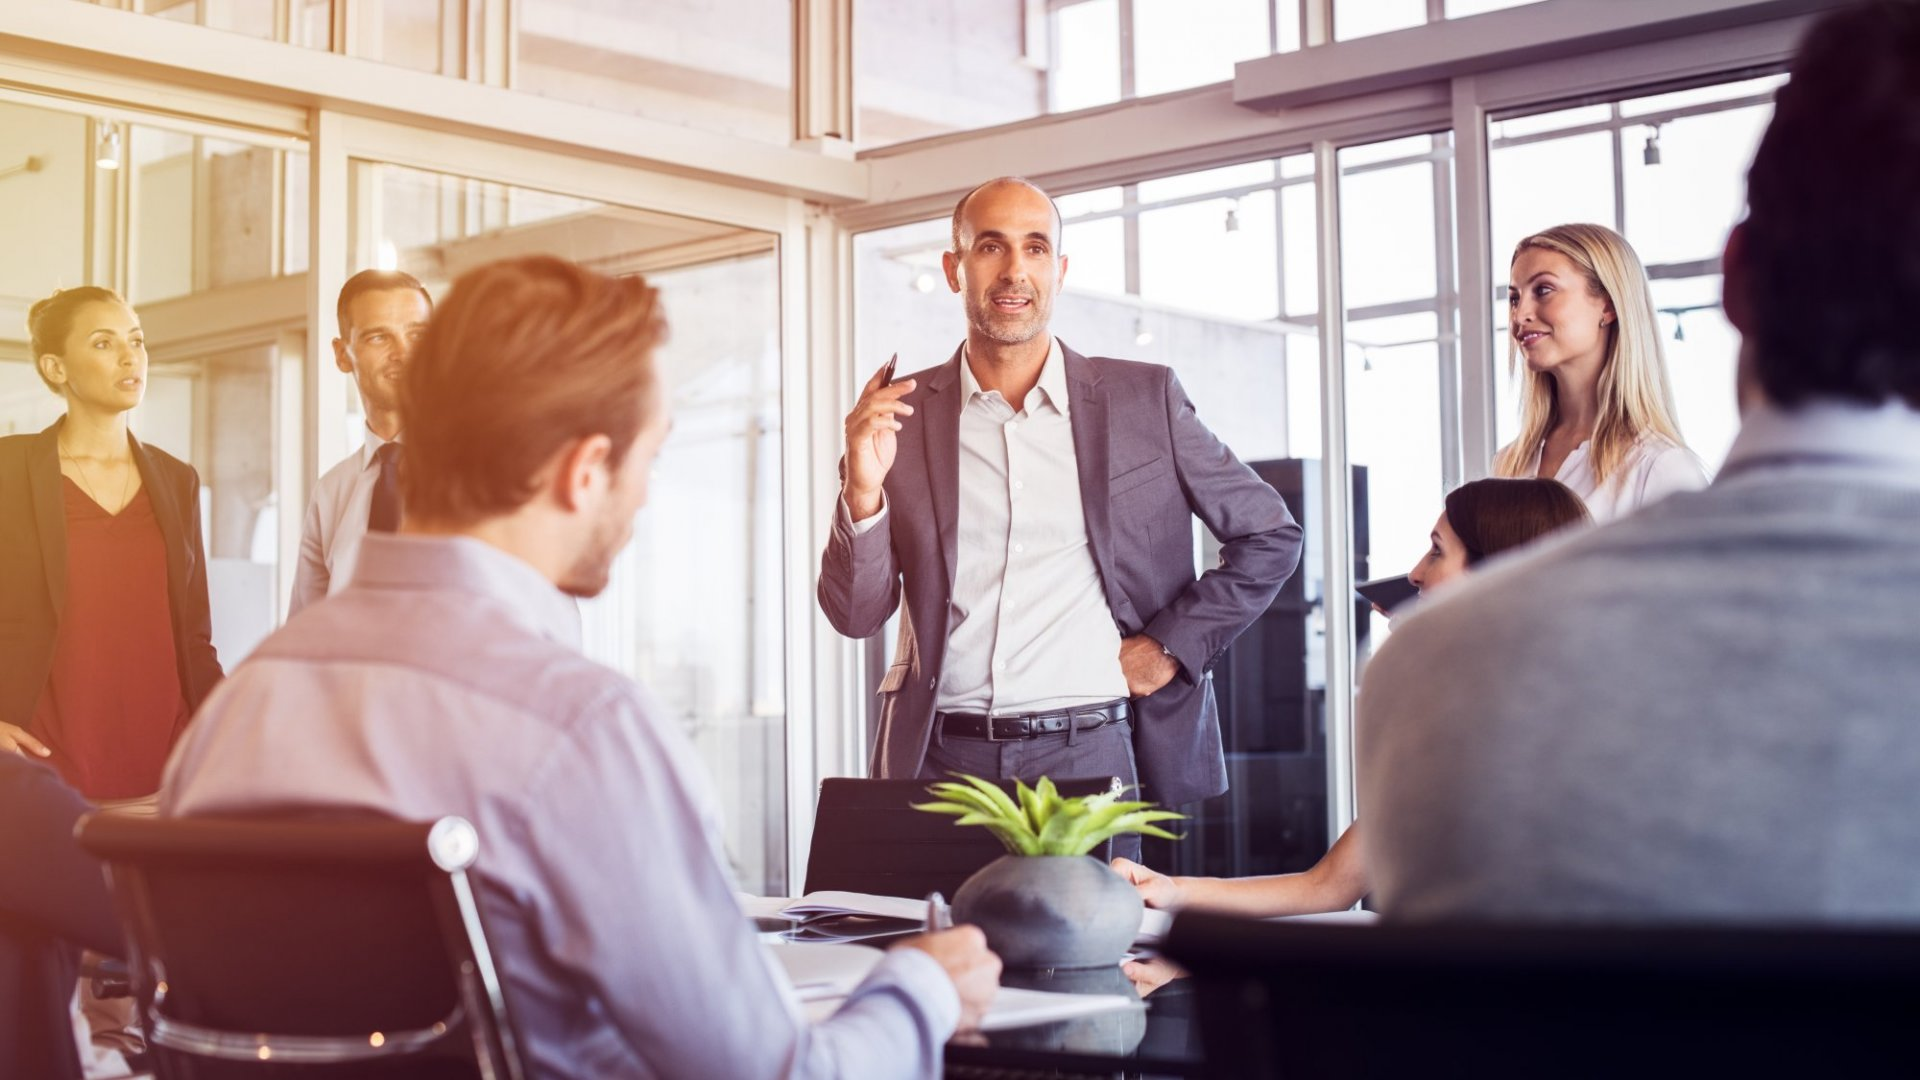 7 Things Every Leader Should Say to Make Employees Feel Appreciated